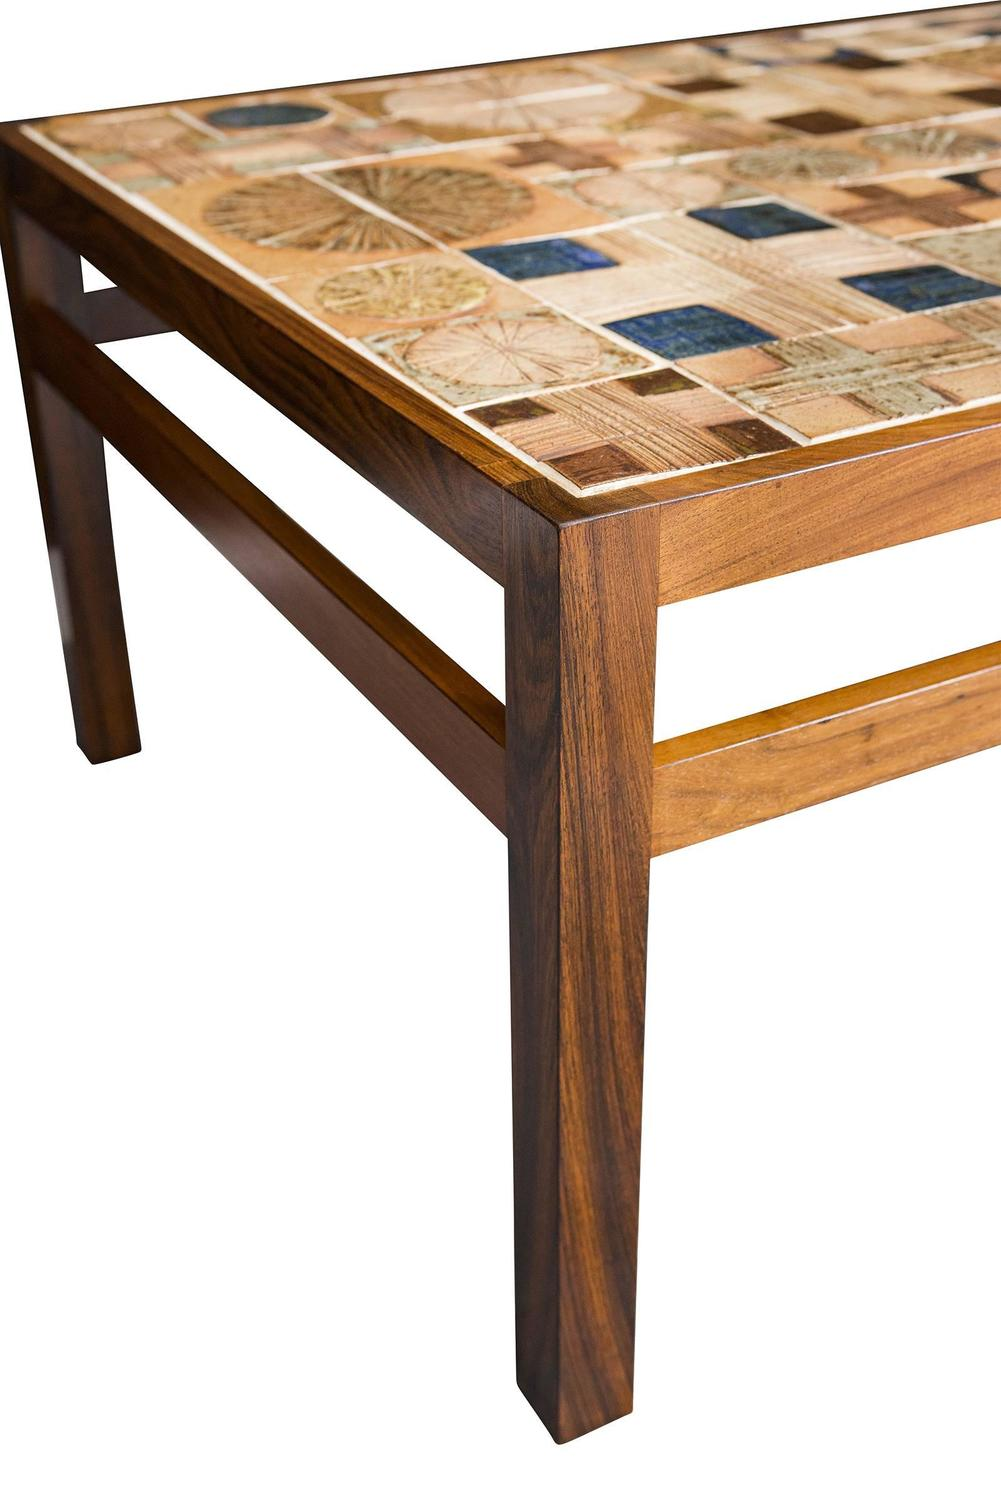 Tue Poulsen Tile Coffee Table At 1stdibs